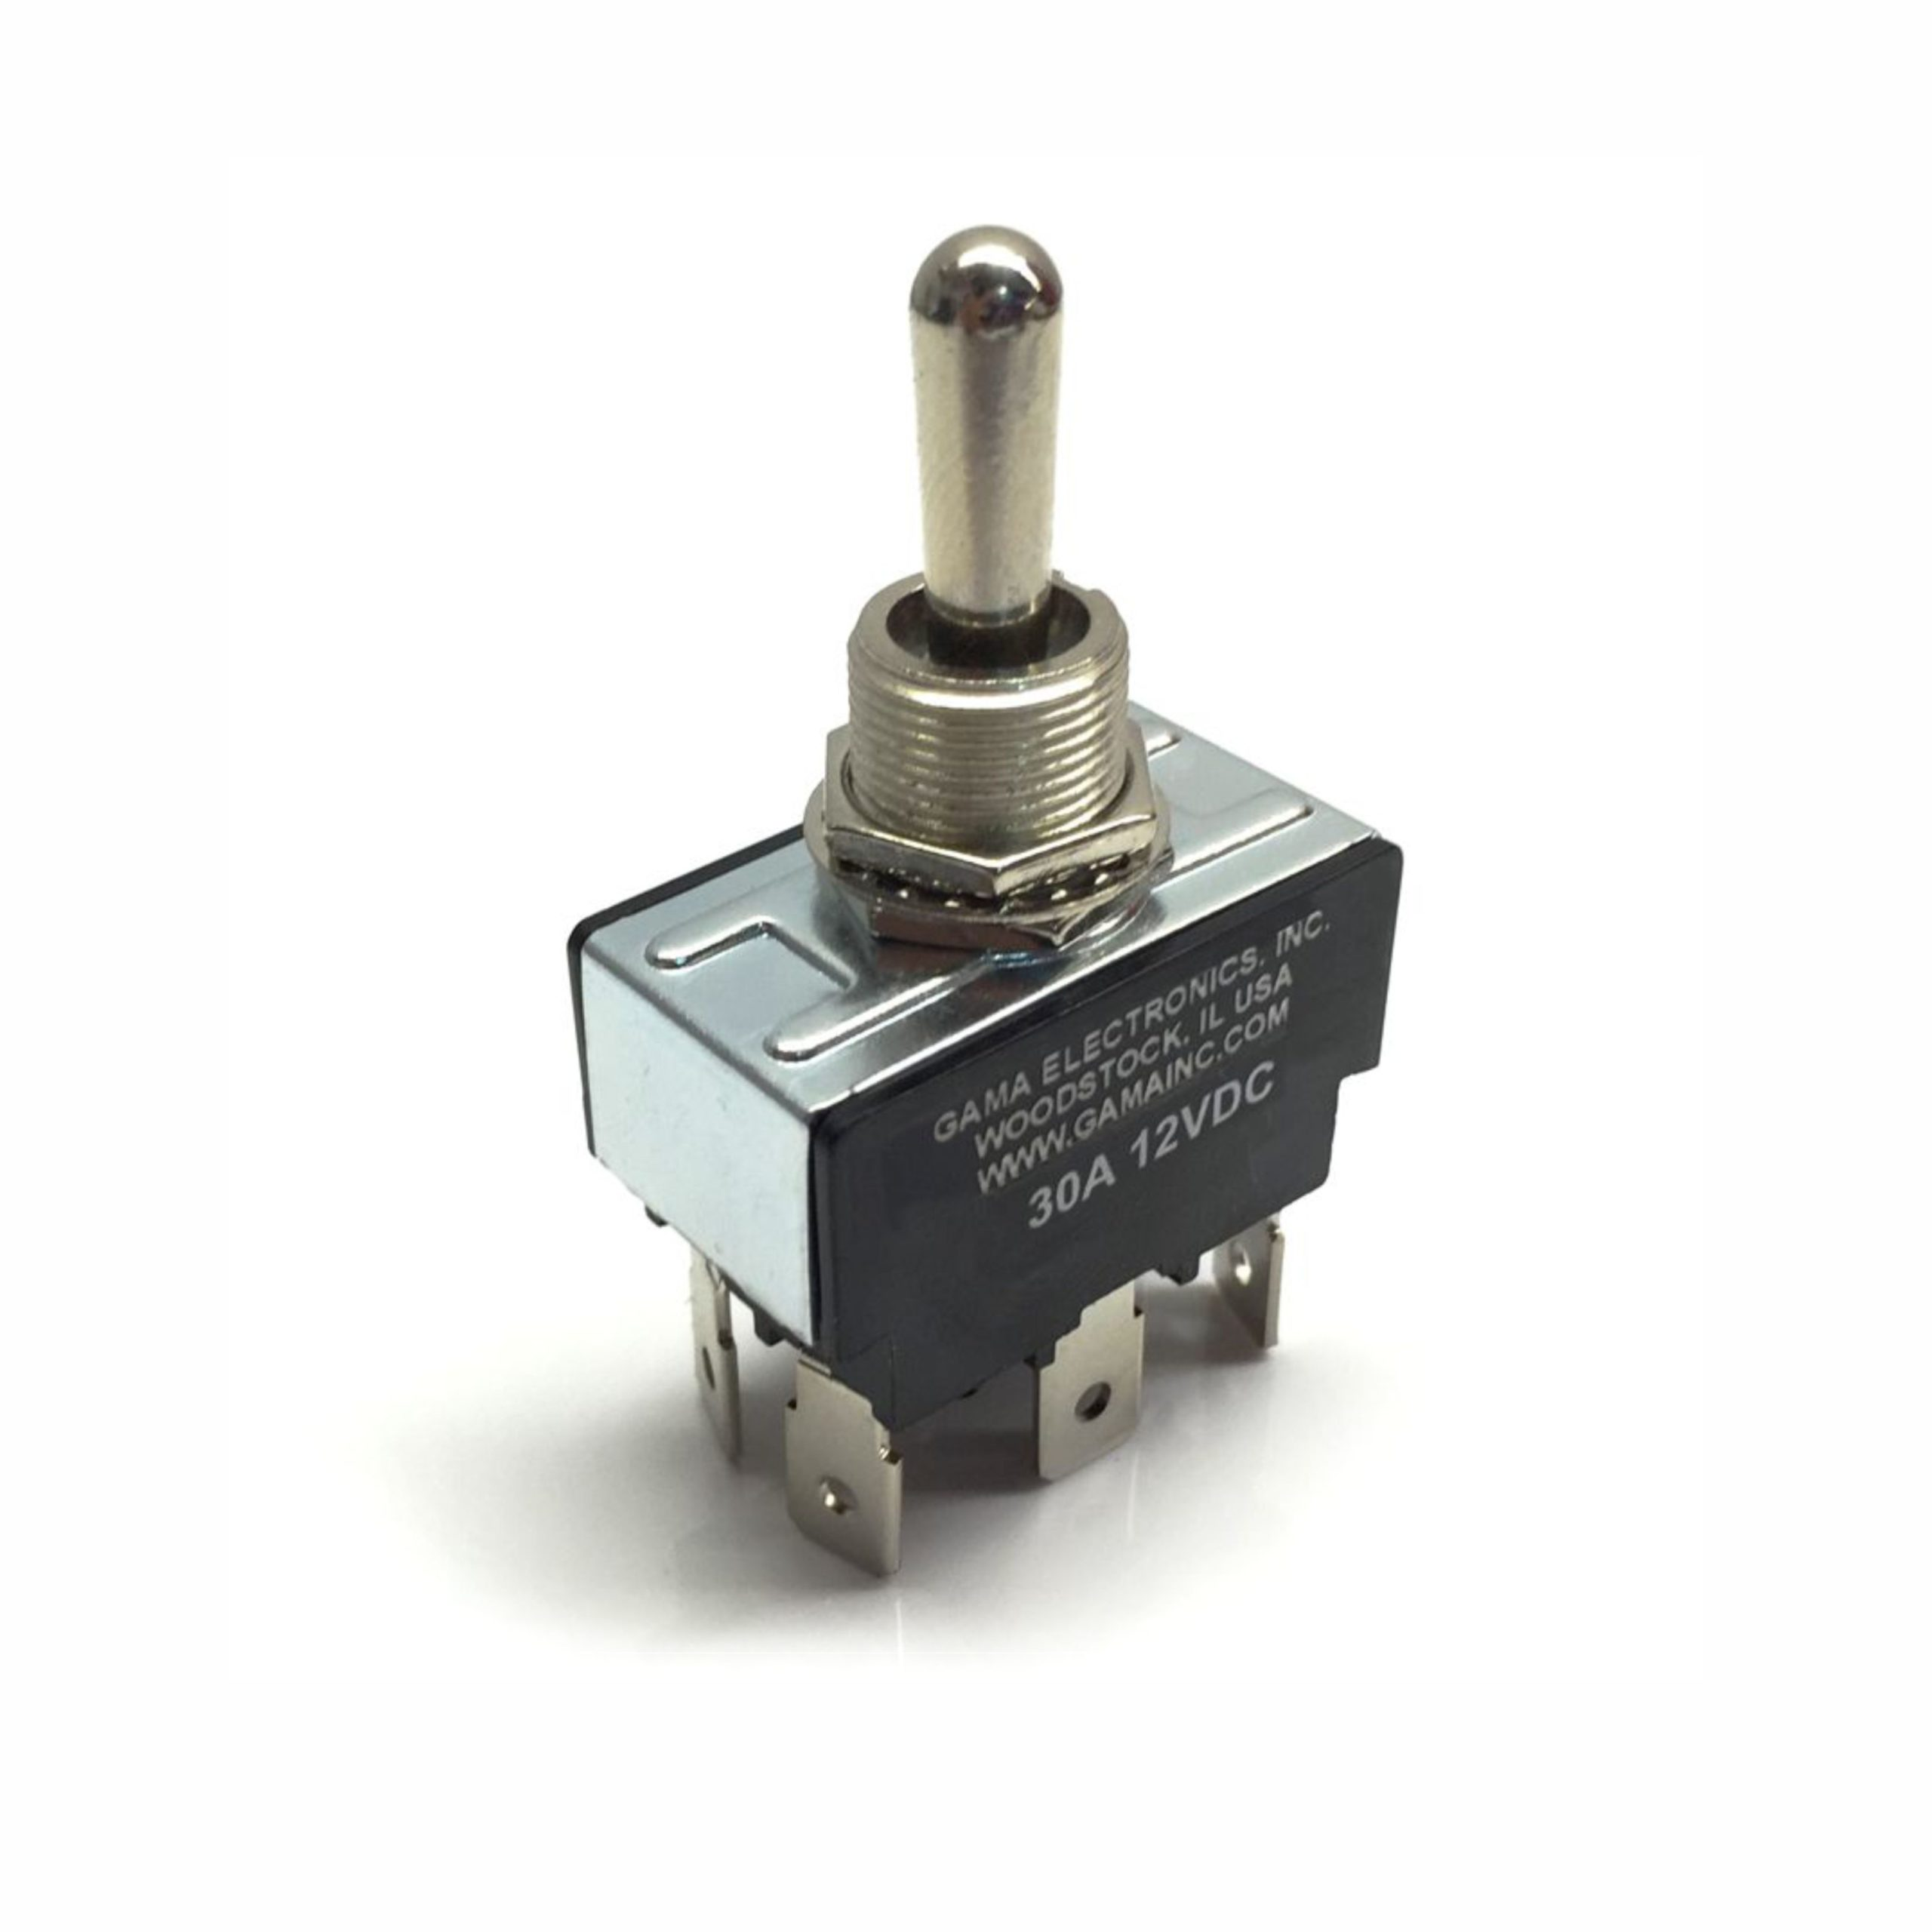 438PR-MM3. $10.95 – $19.95. Toggle Switch, 30A Polarity Reversing ...